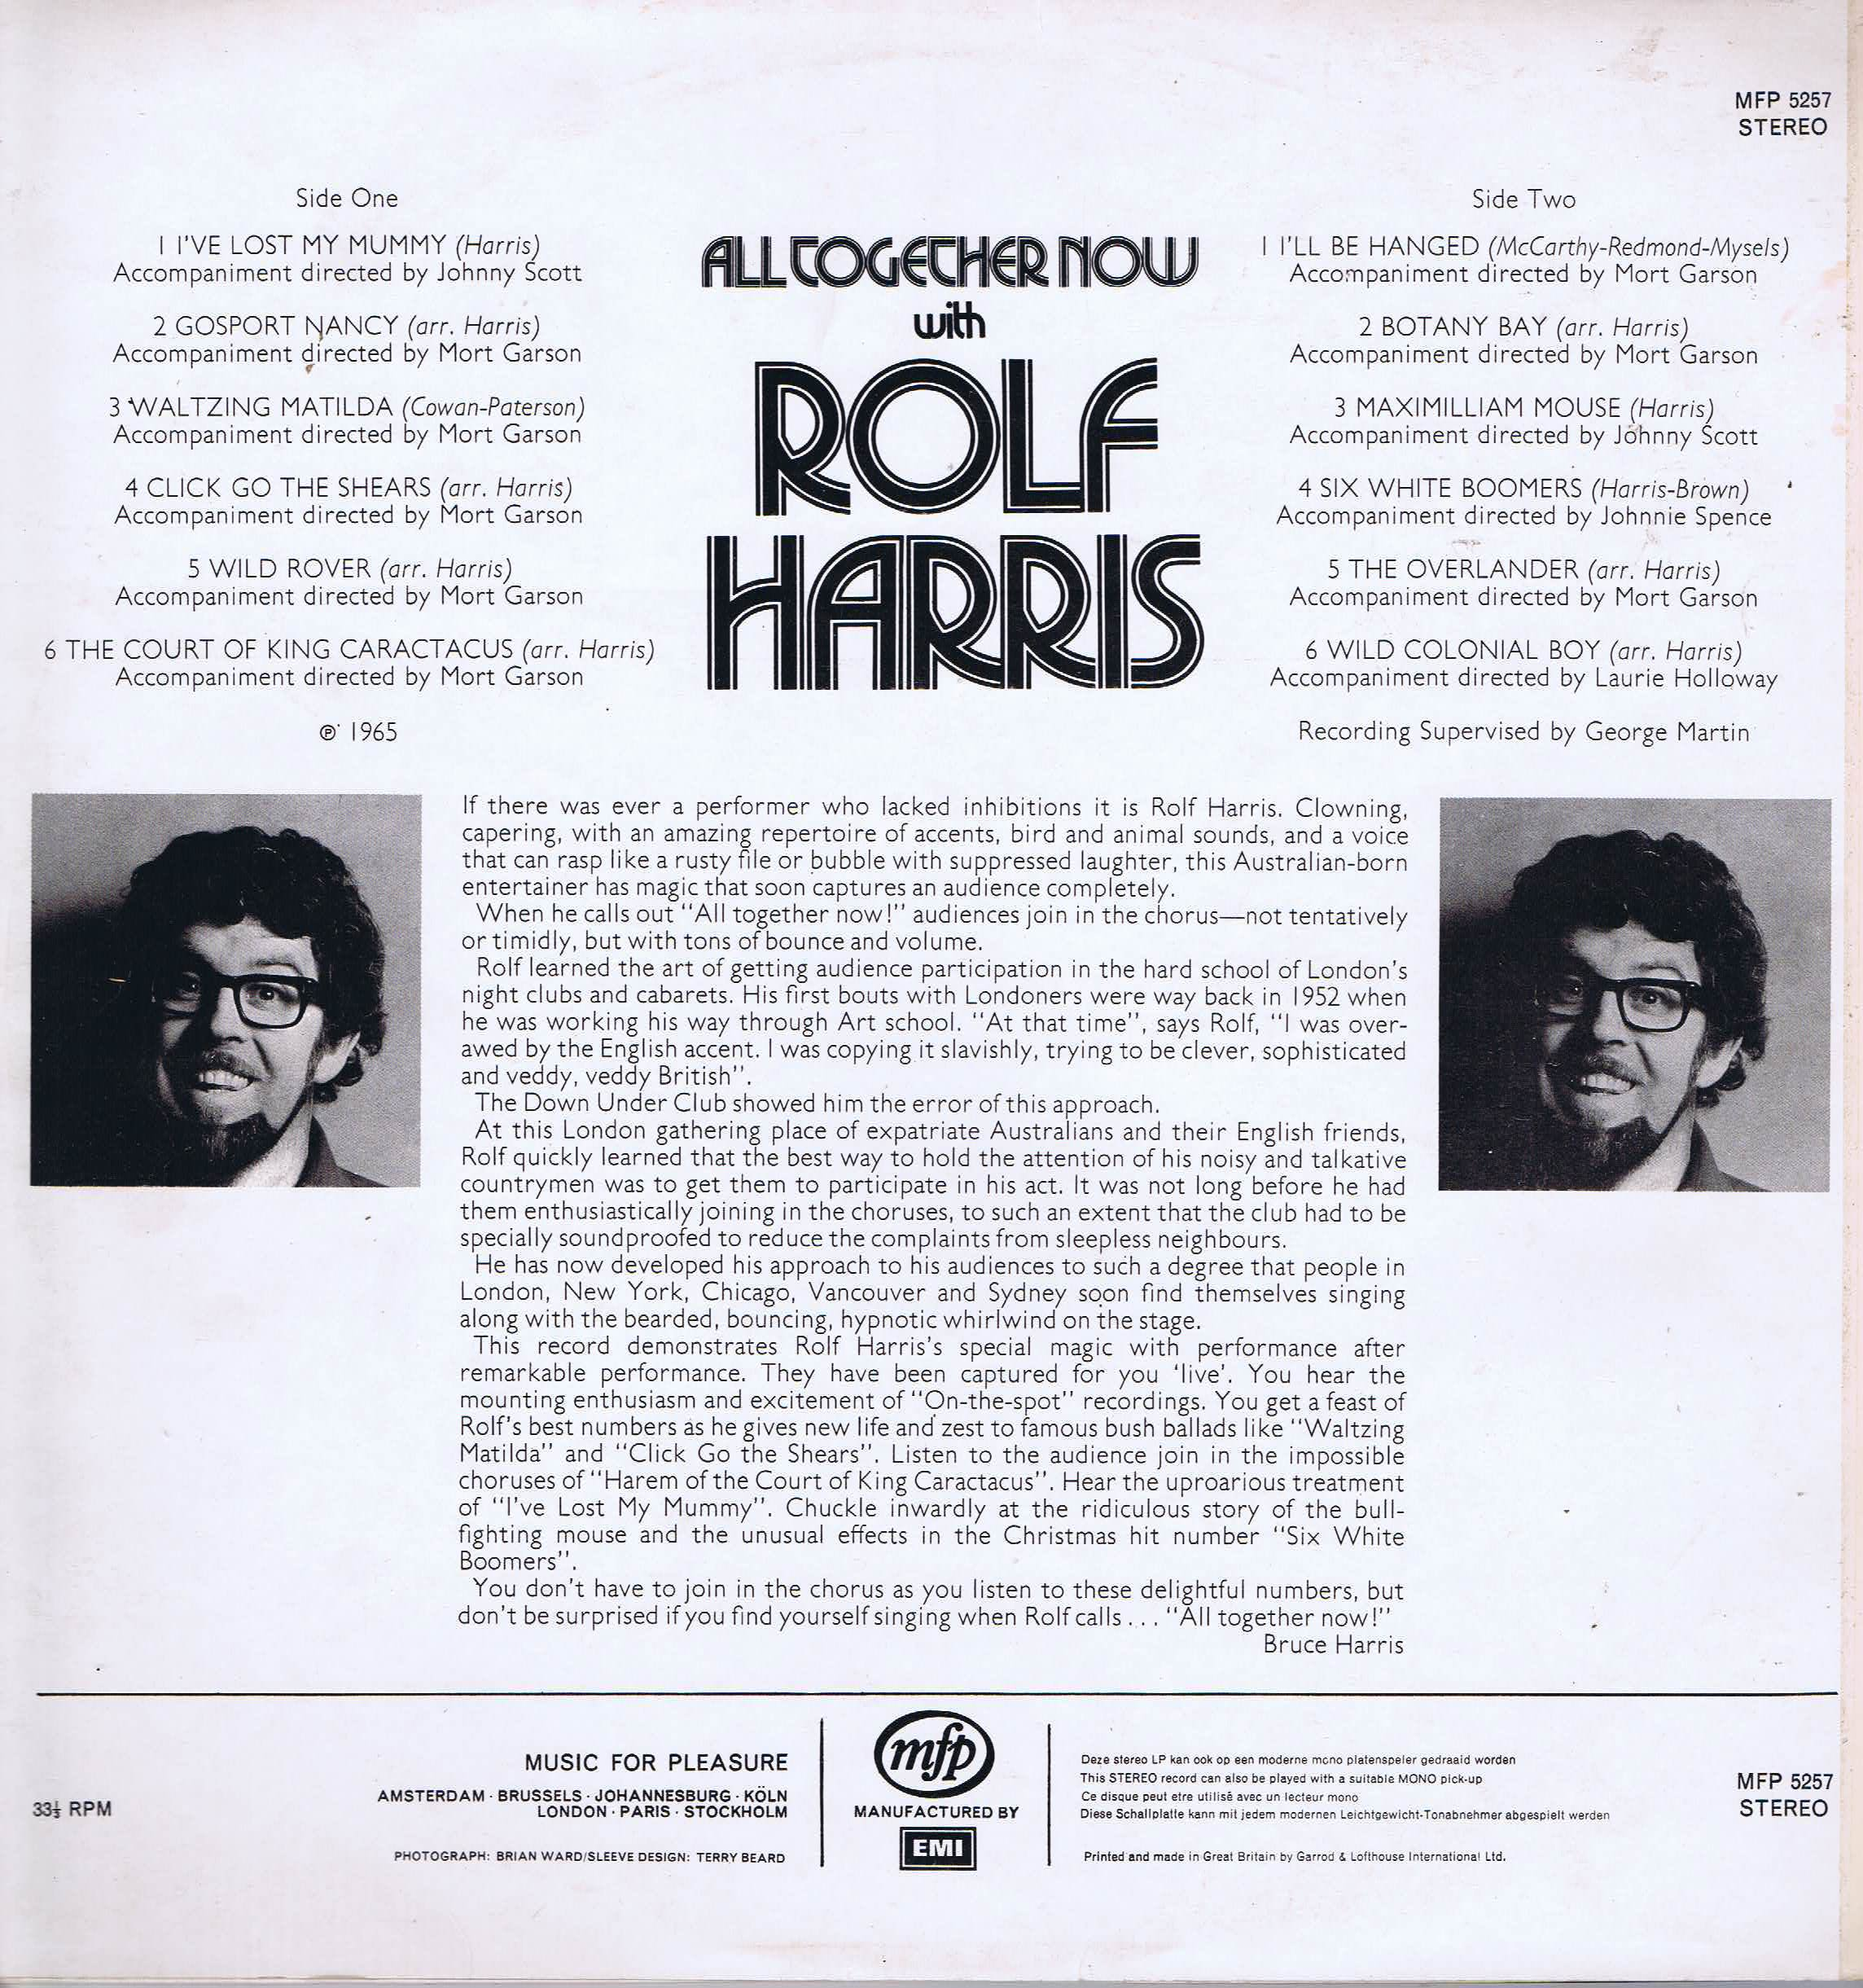 Rolf Harris - All Together Now - MFP 5257 – LP Vinyl Record